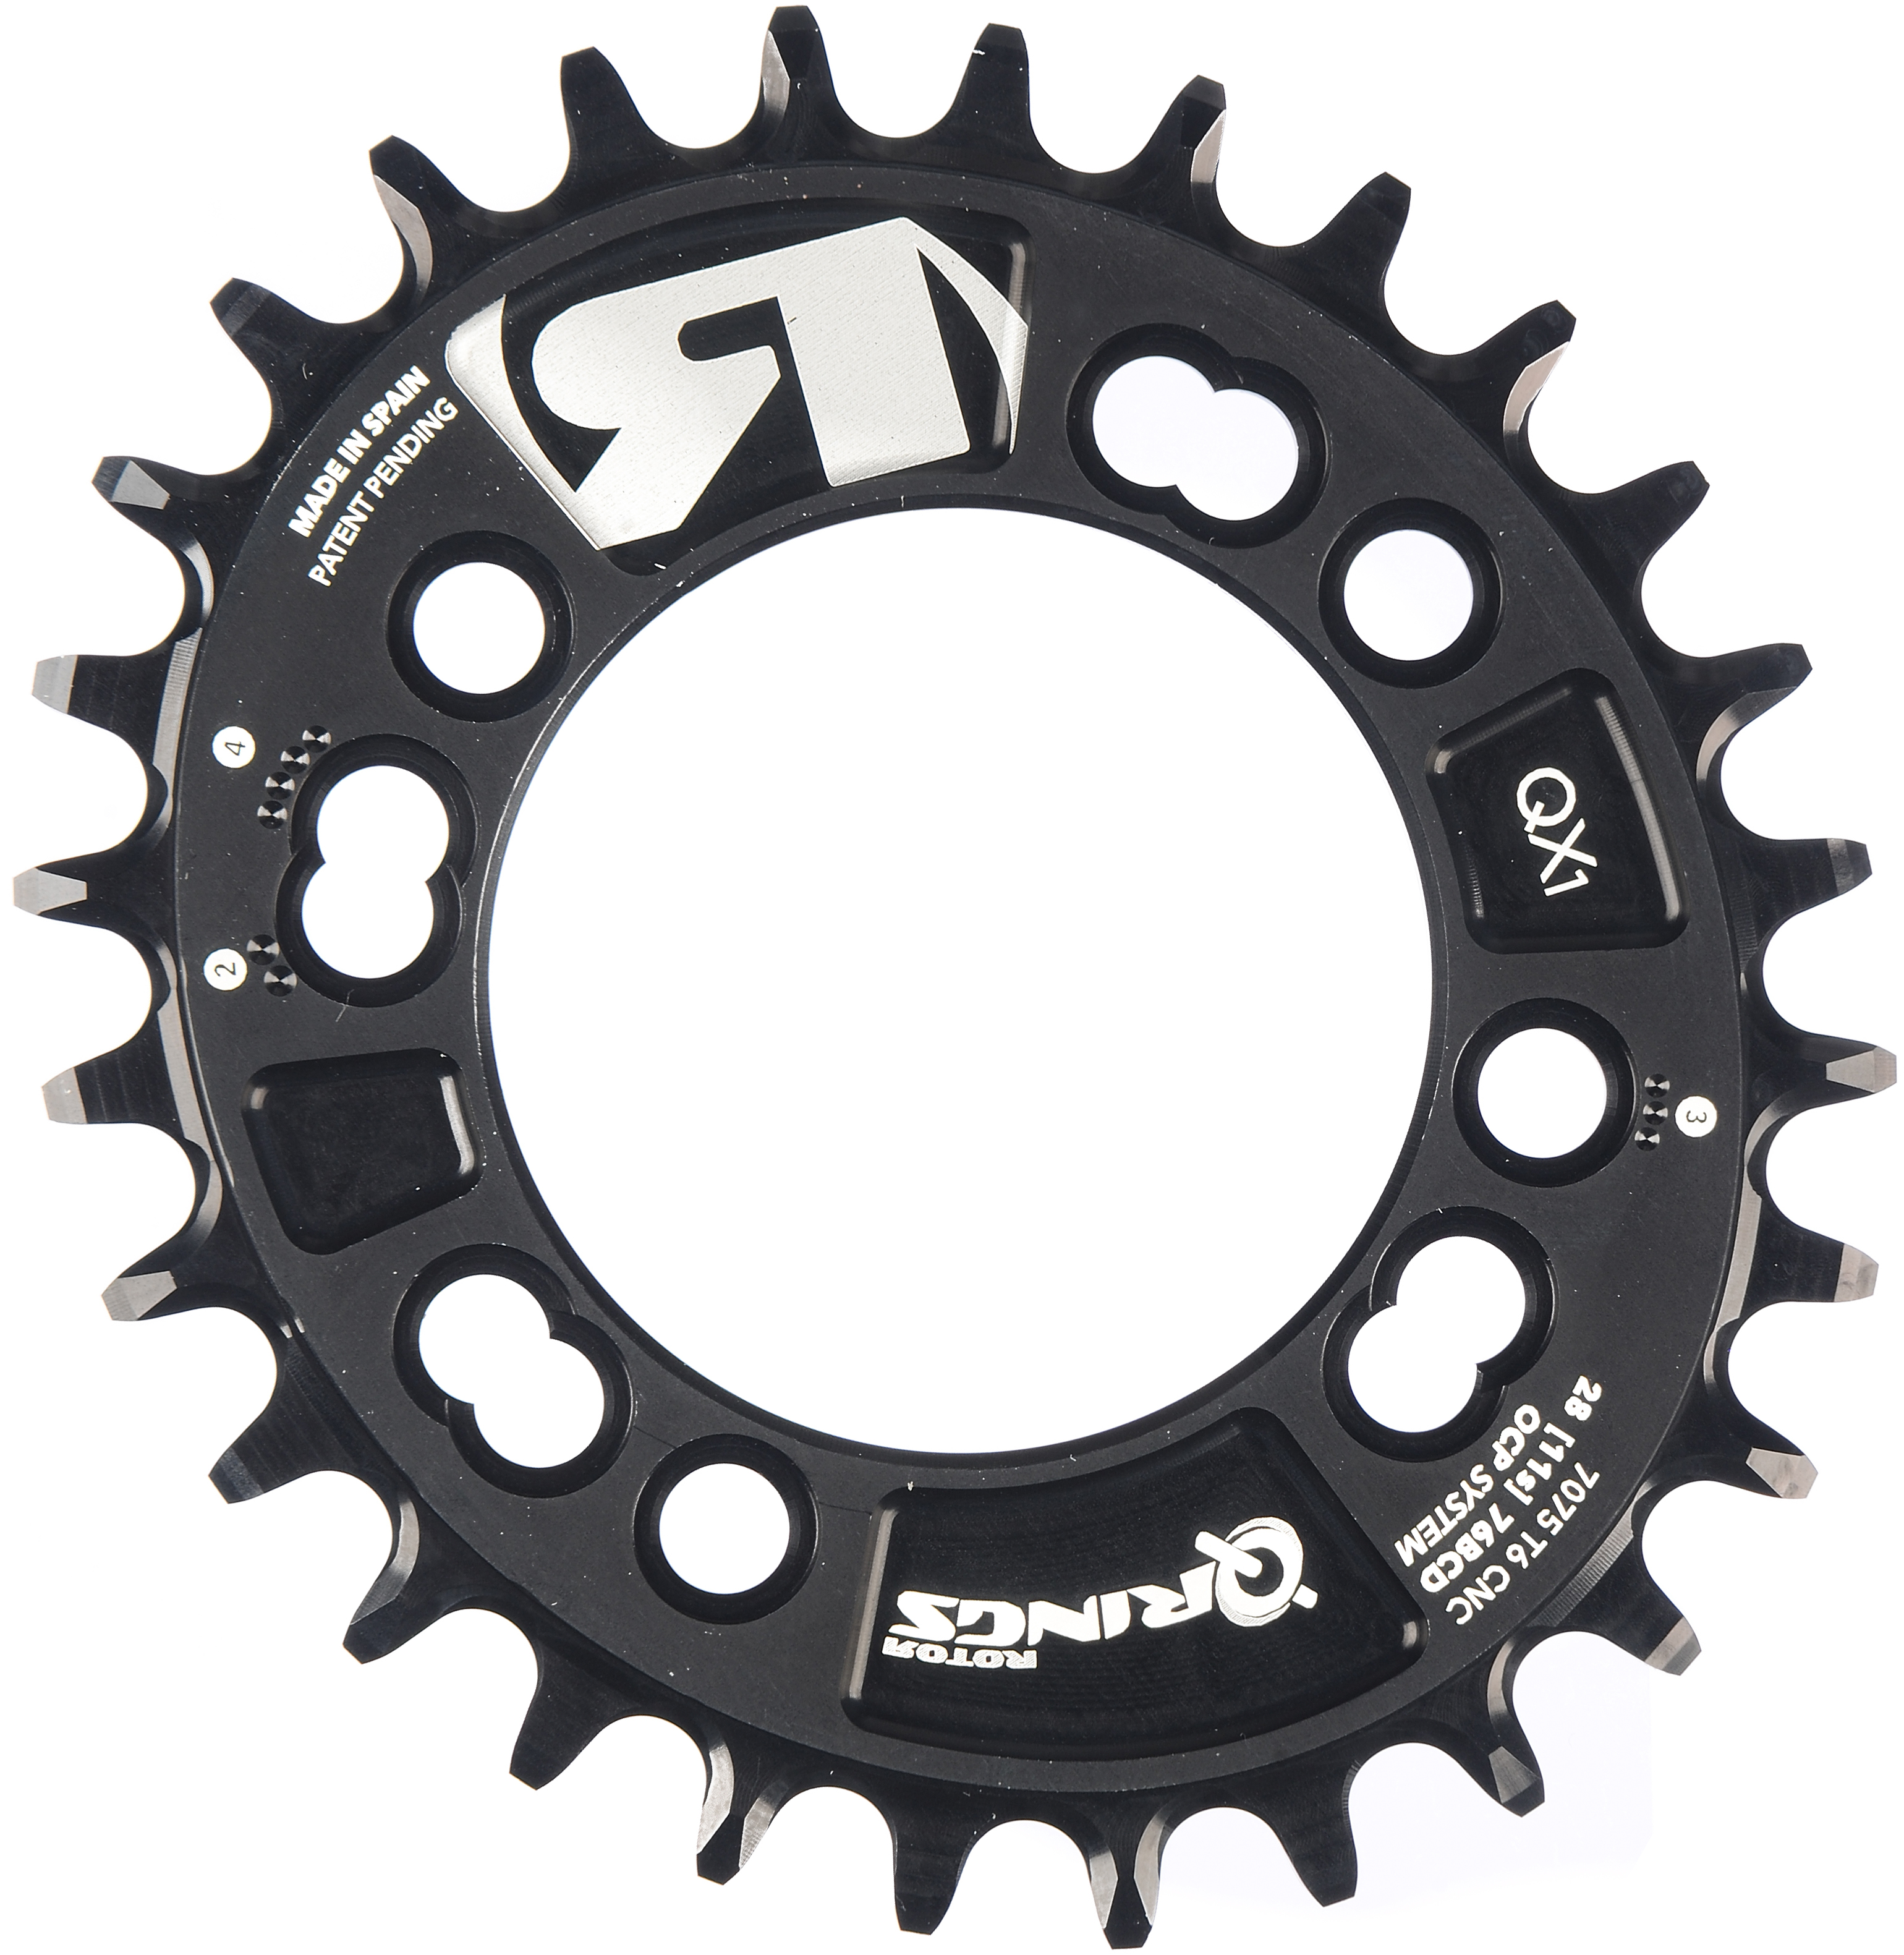 Rotor QX1 MTB Chainring (for 1x Systems) | chainrings_component